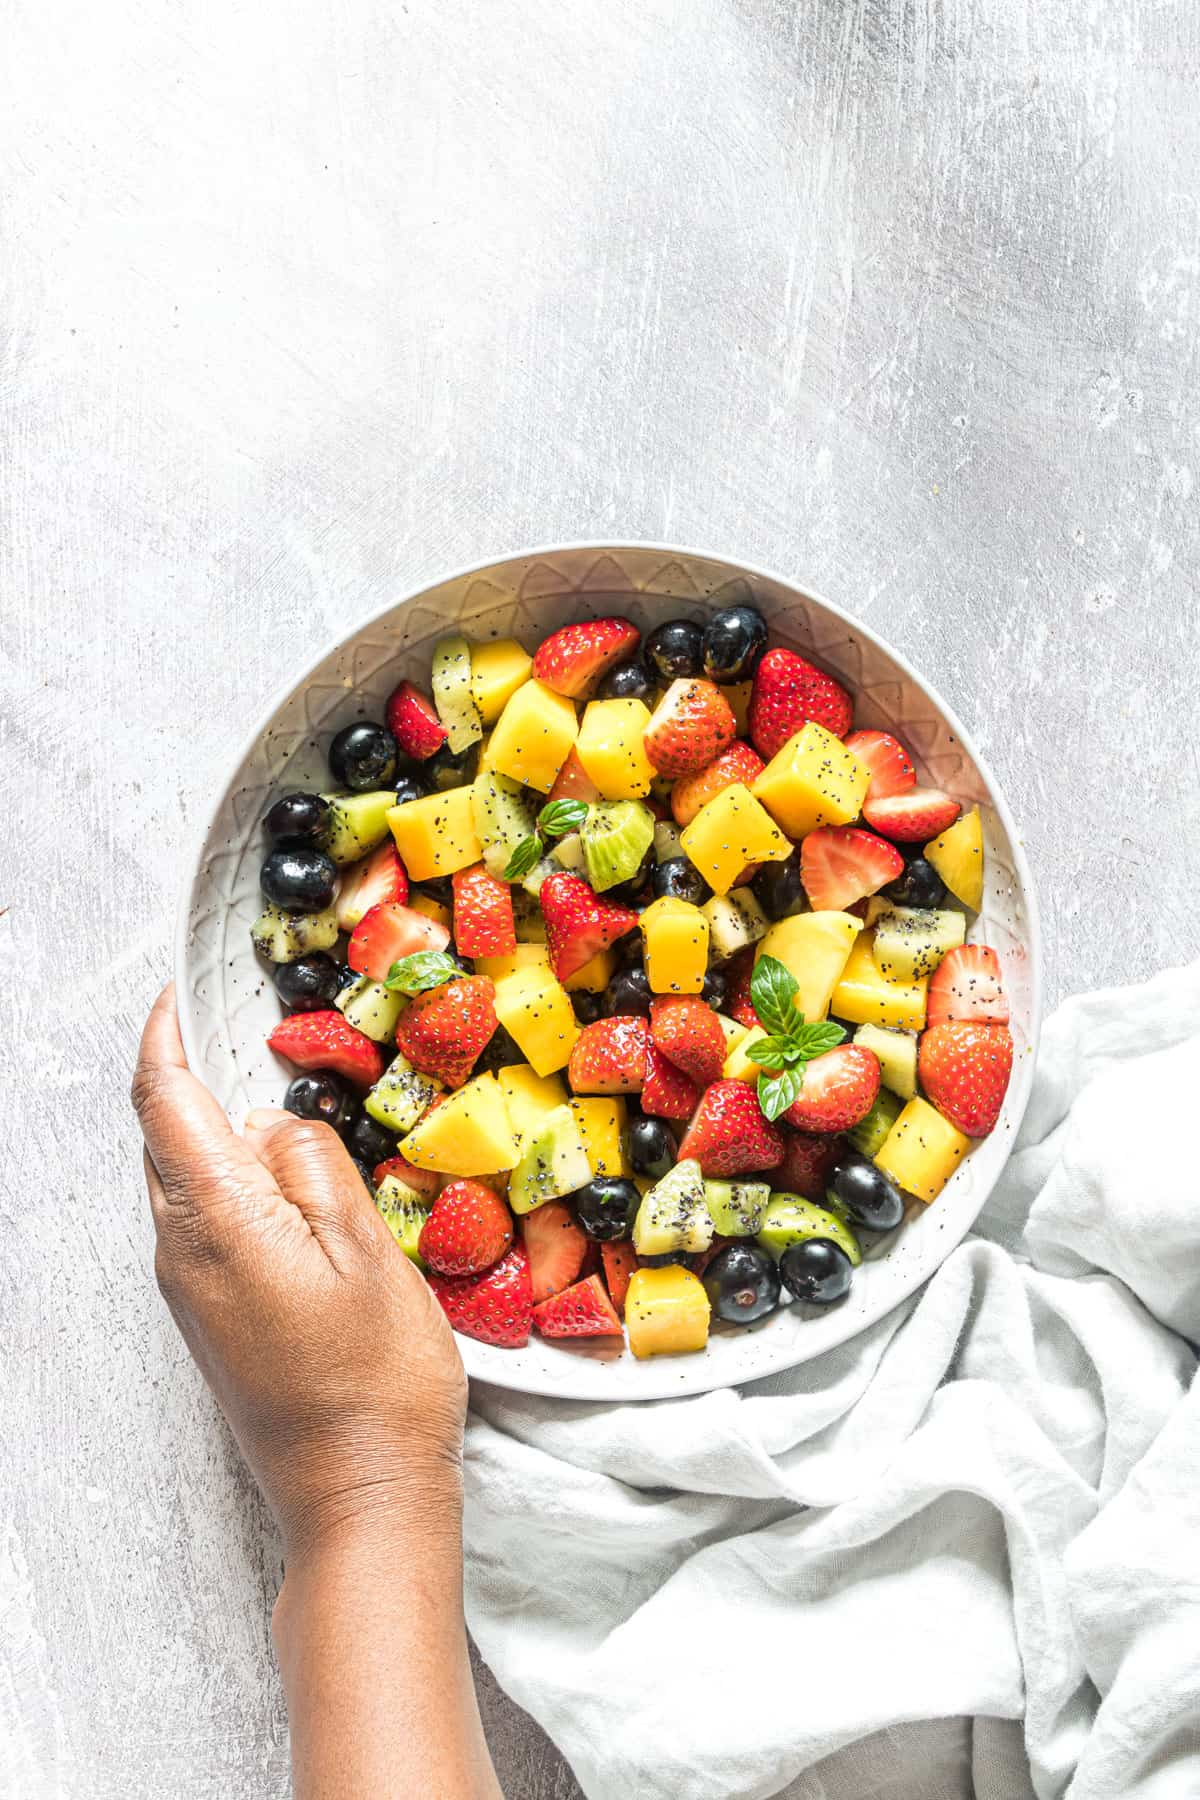 a hand holding a bowl filled with the finished fruit salad